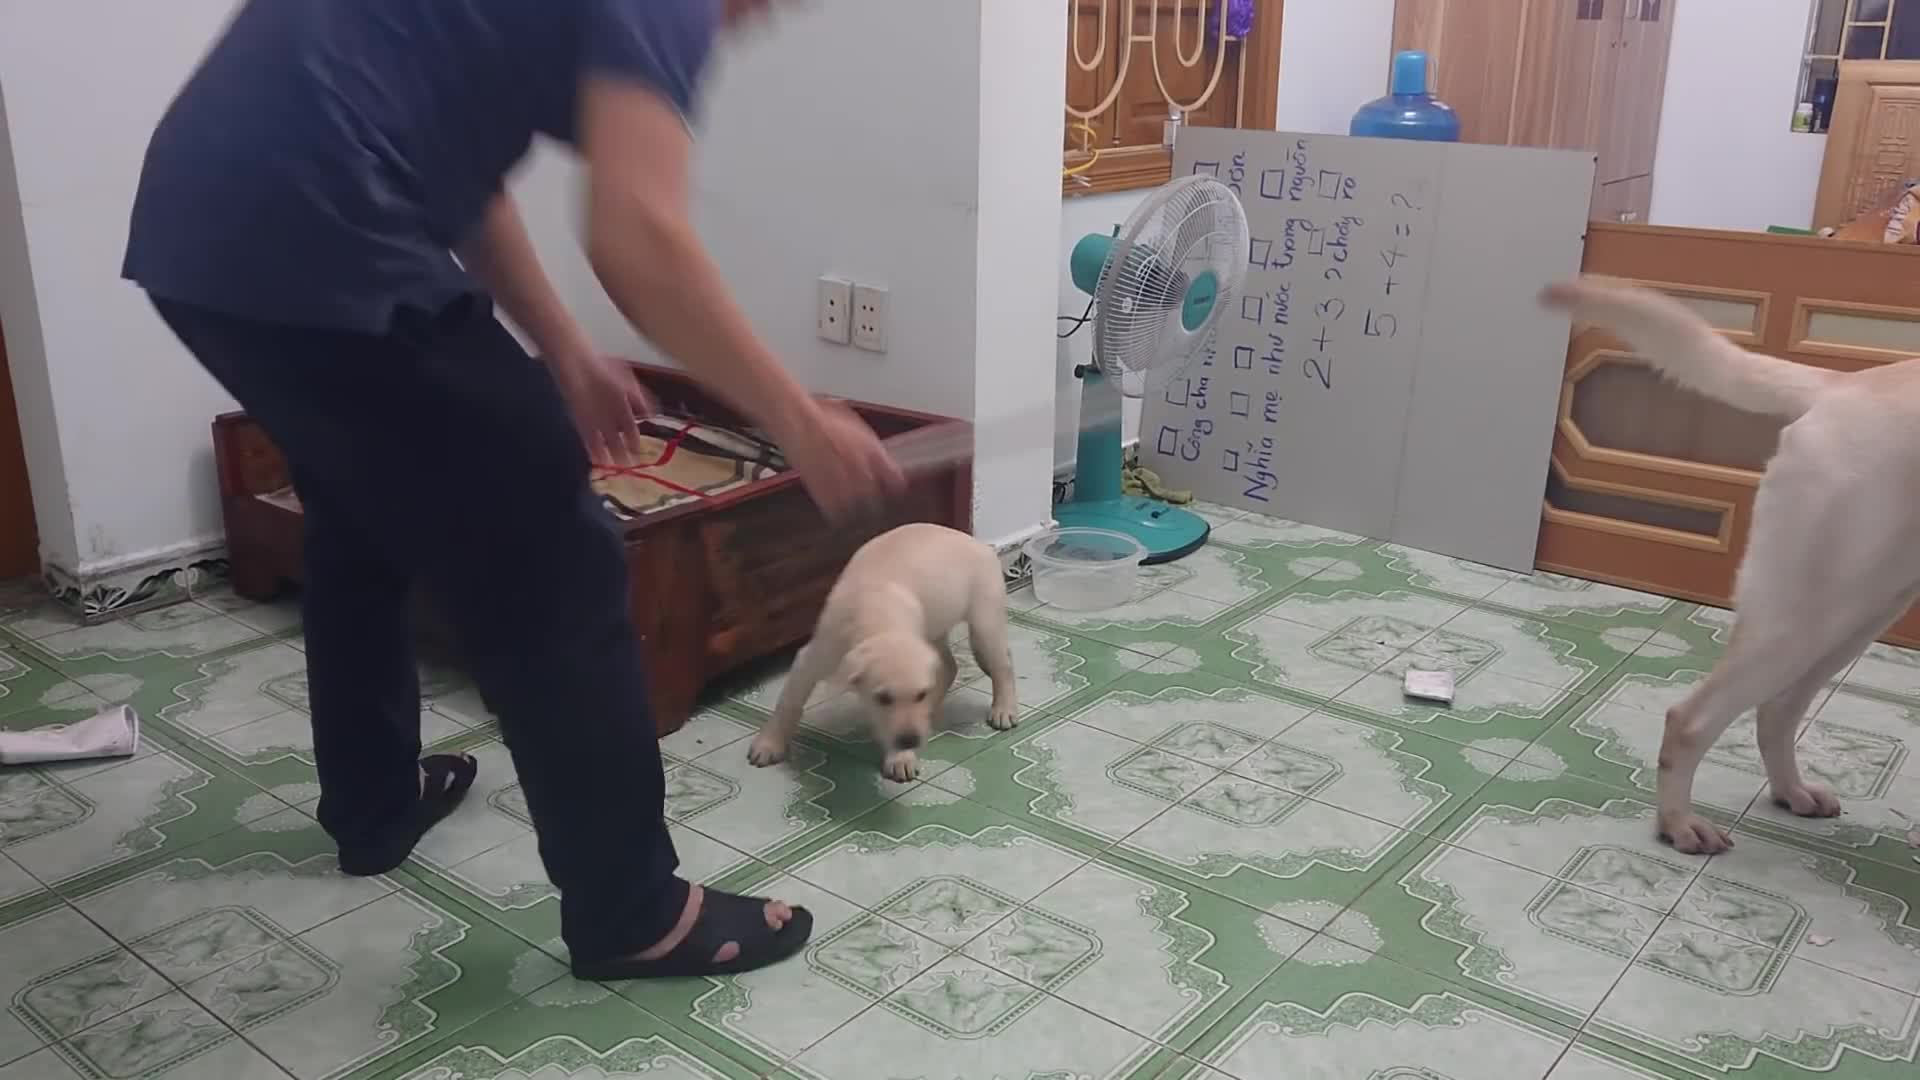 Owner conducts an experiment to see how far his dog would go to save his puppy GIFs